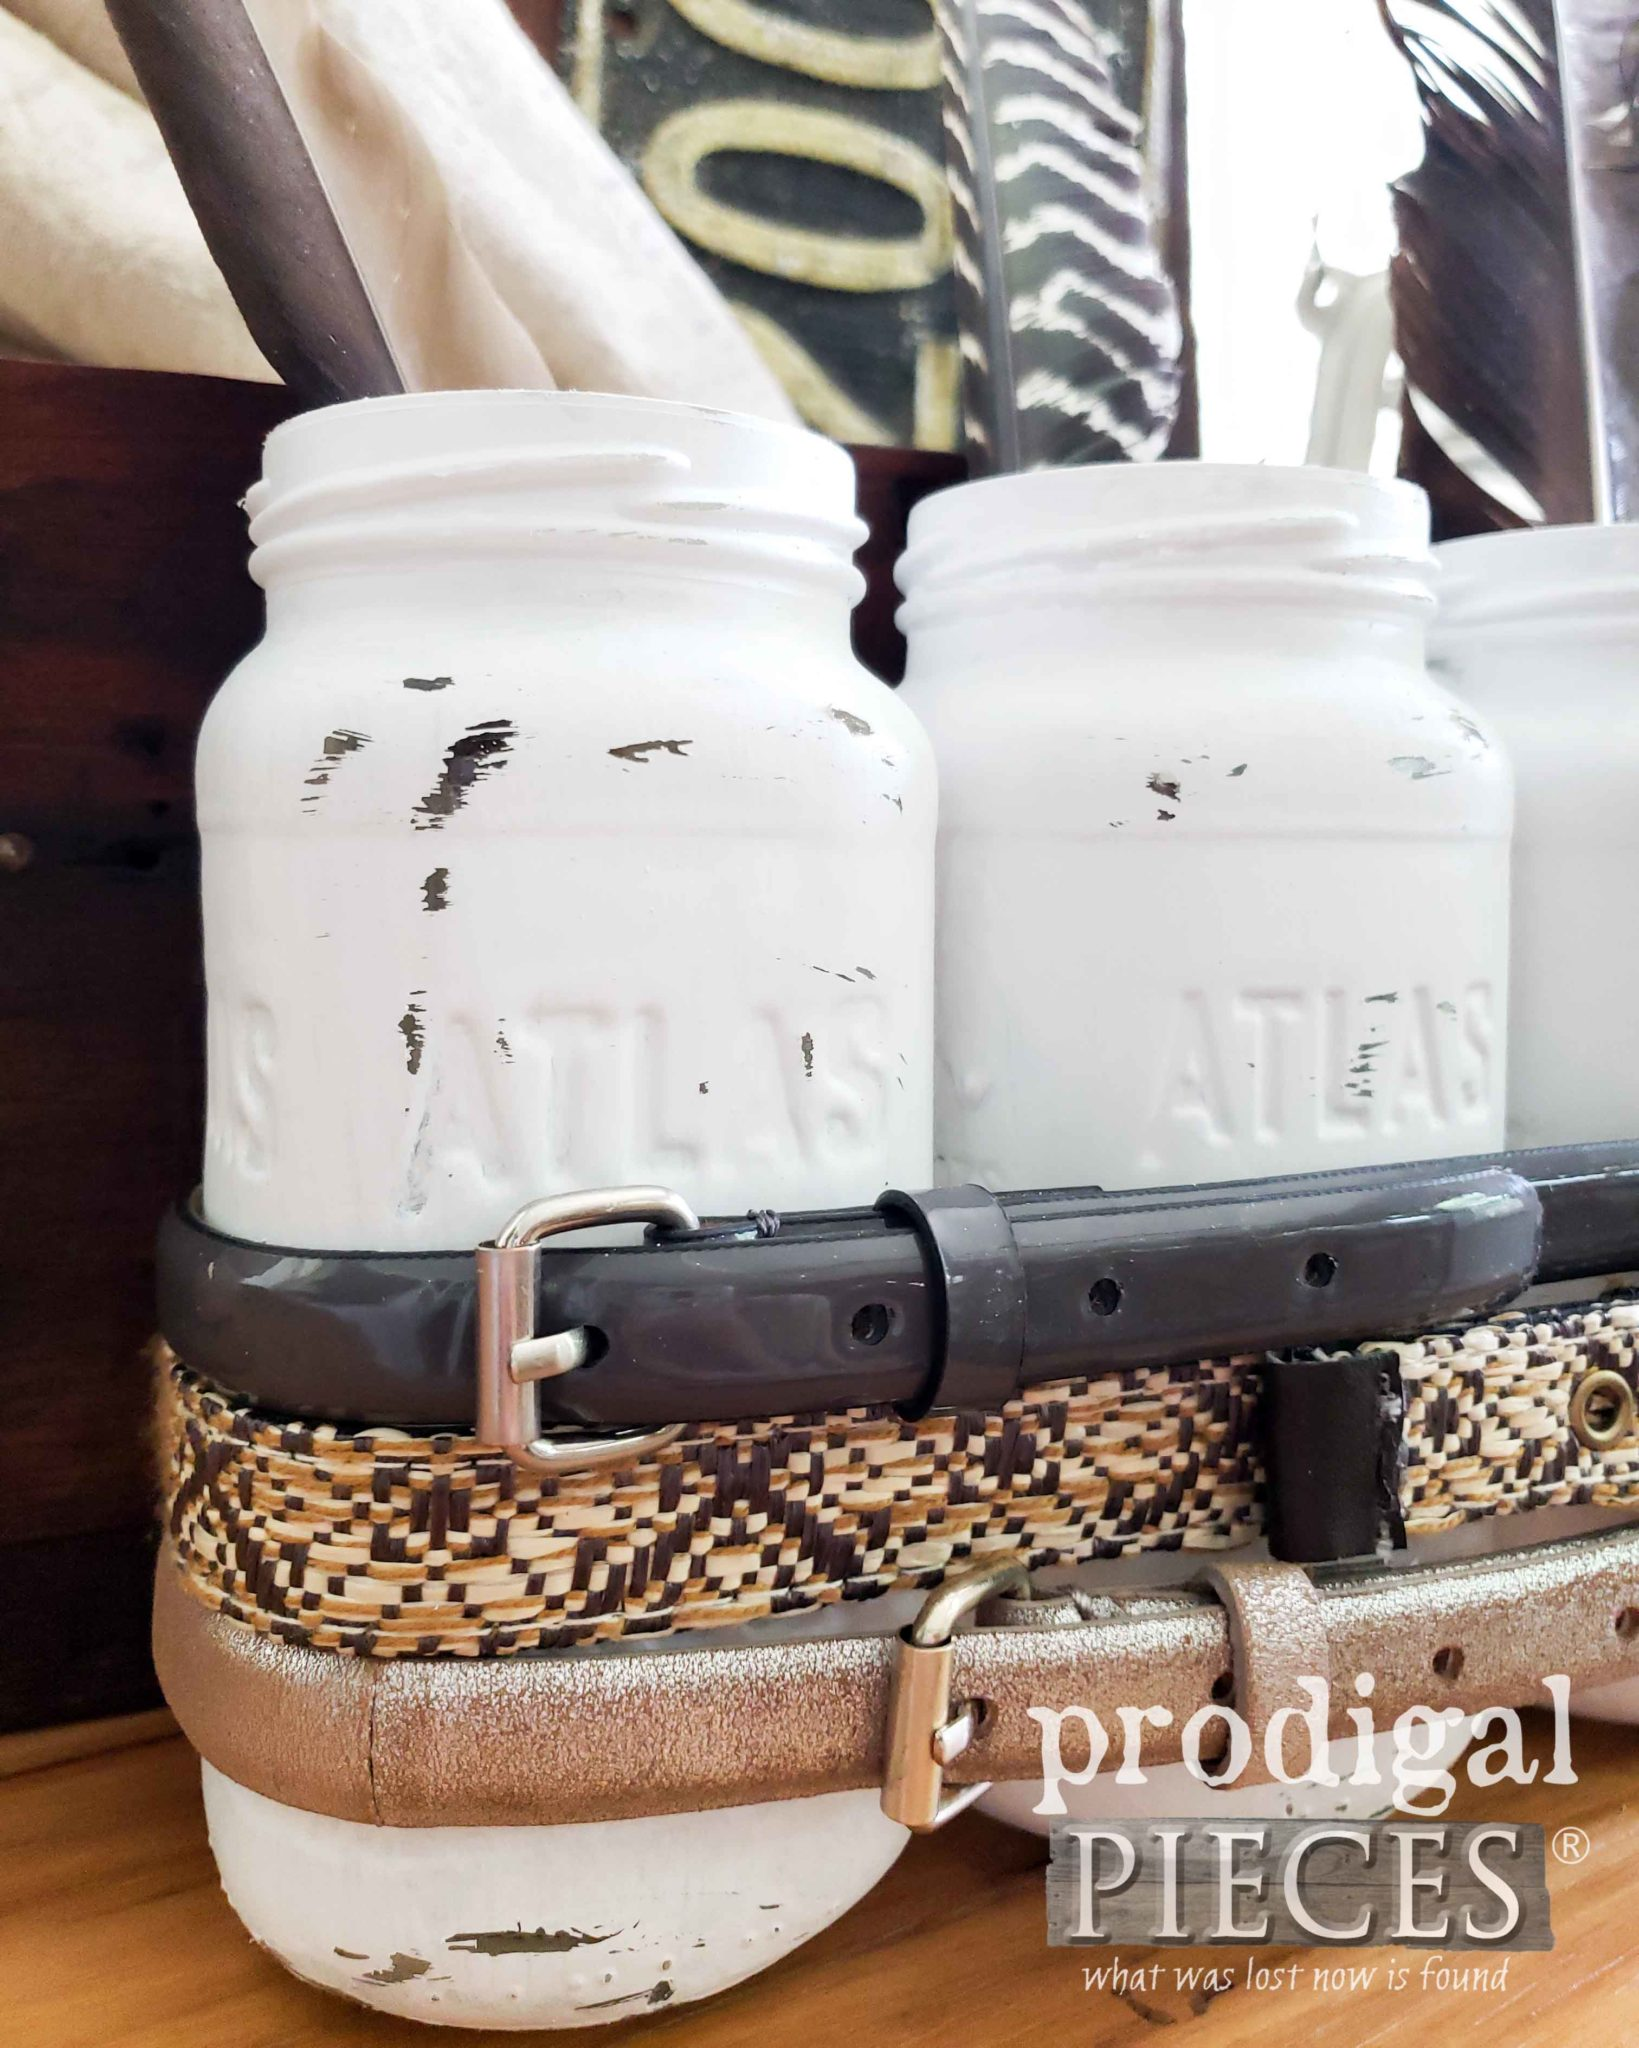 Painted Canning Jars Upcycled into Farmhouse Decor by Larissa of Prodigal Pieces | prodigalpieces.com #prodigalpieces #farmhouse #rustic #home #homedecor